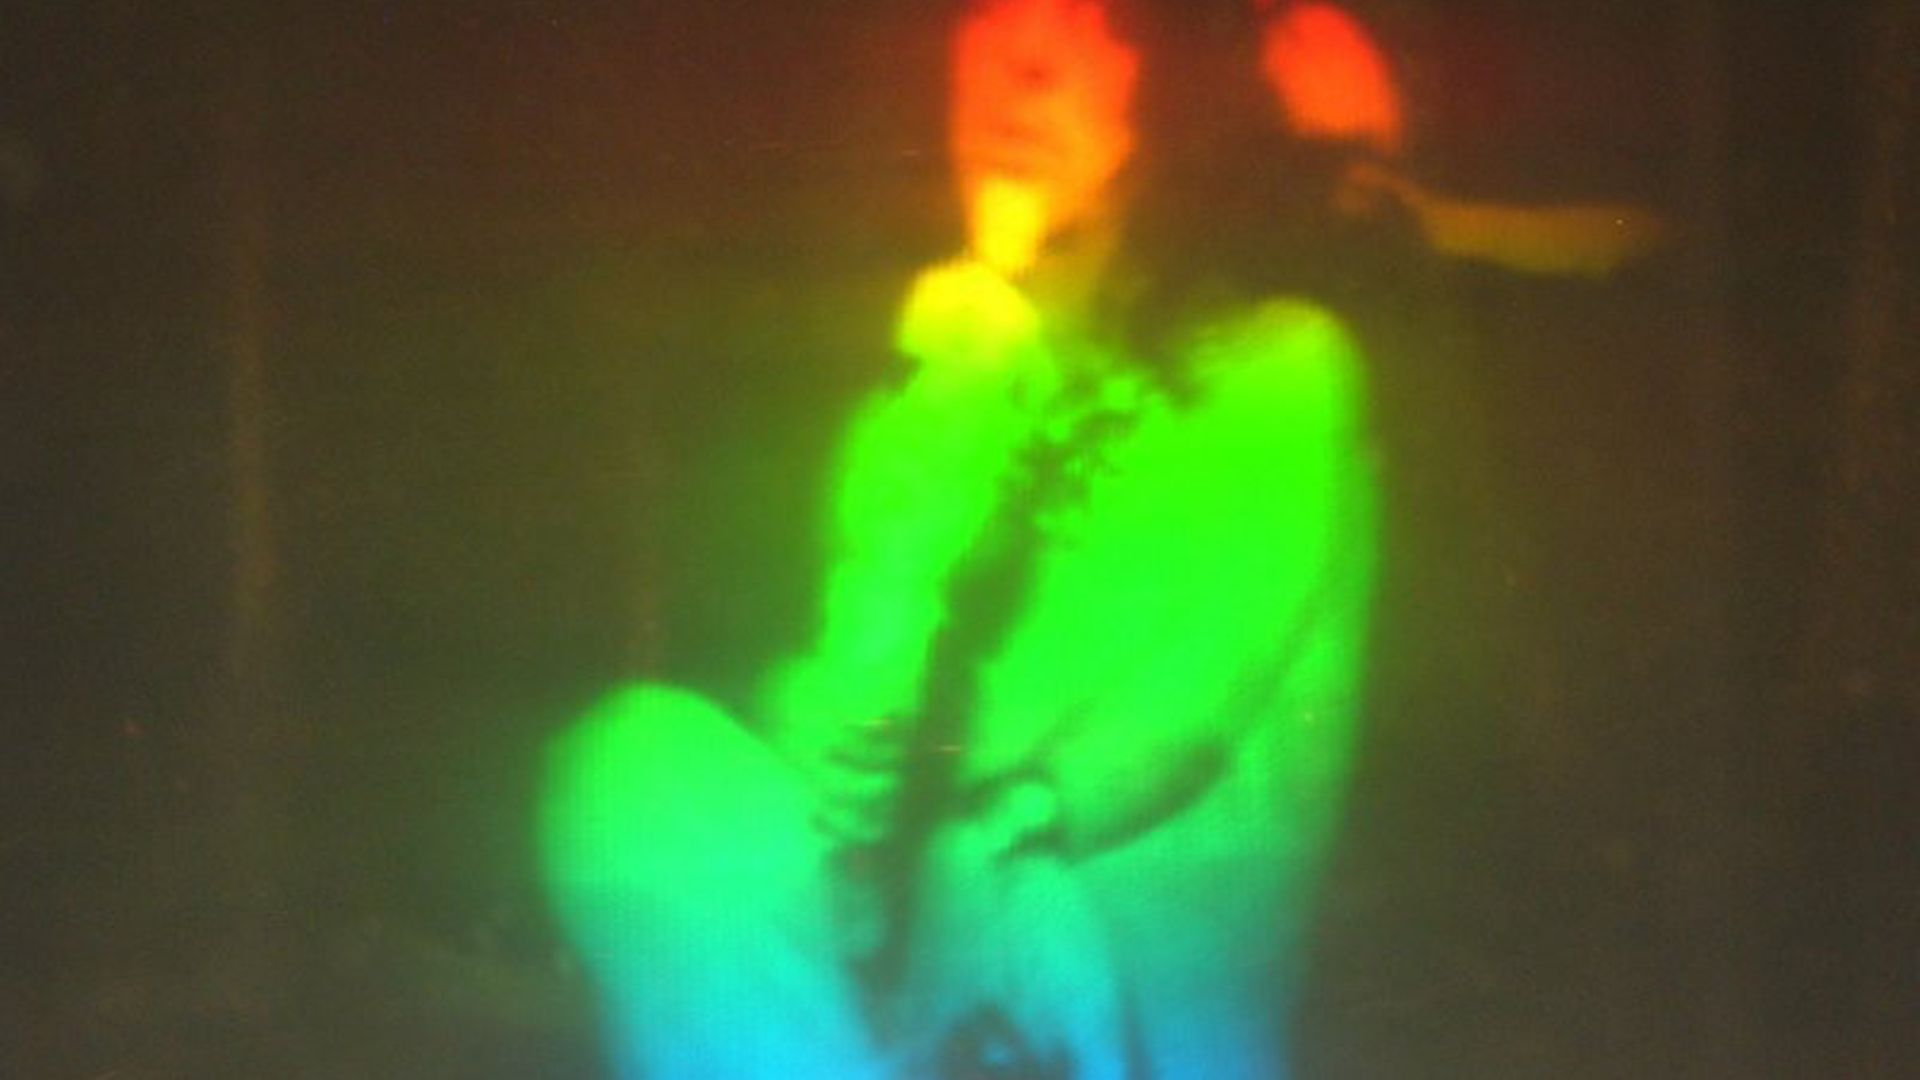 The hologram created for Alice Cooper by Dali - Credit: Archant